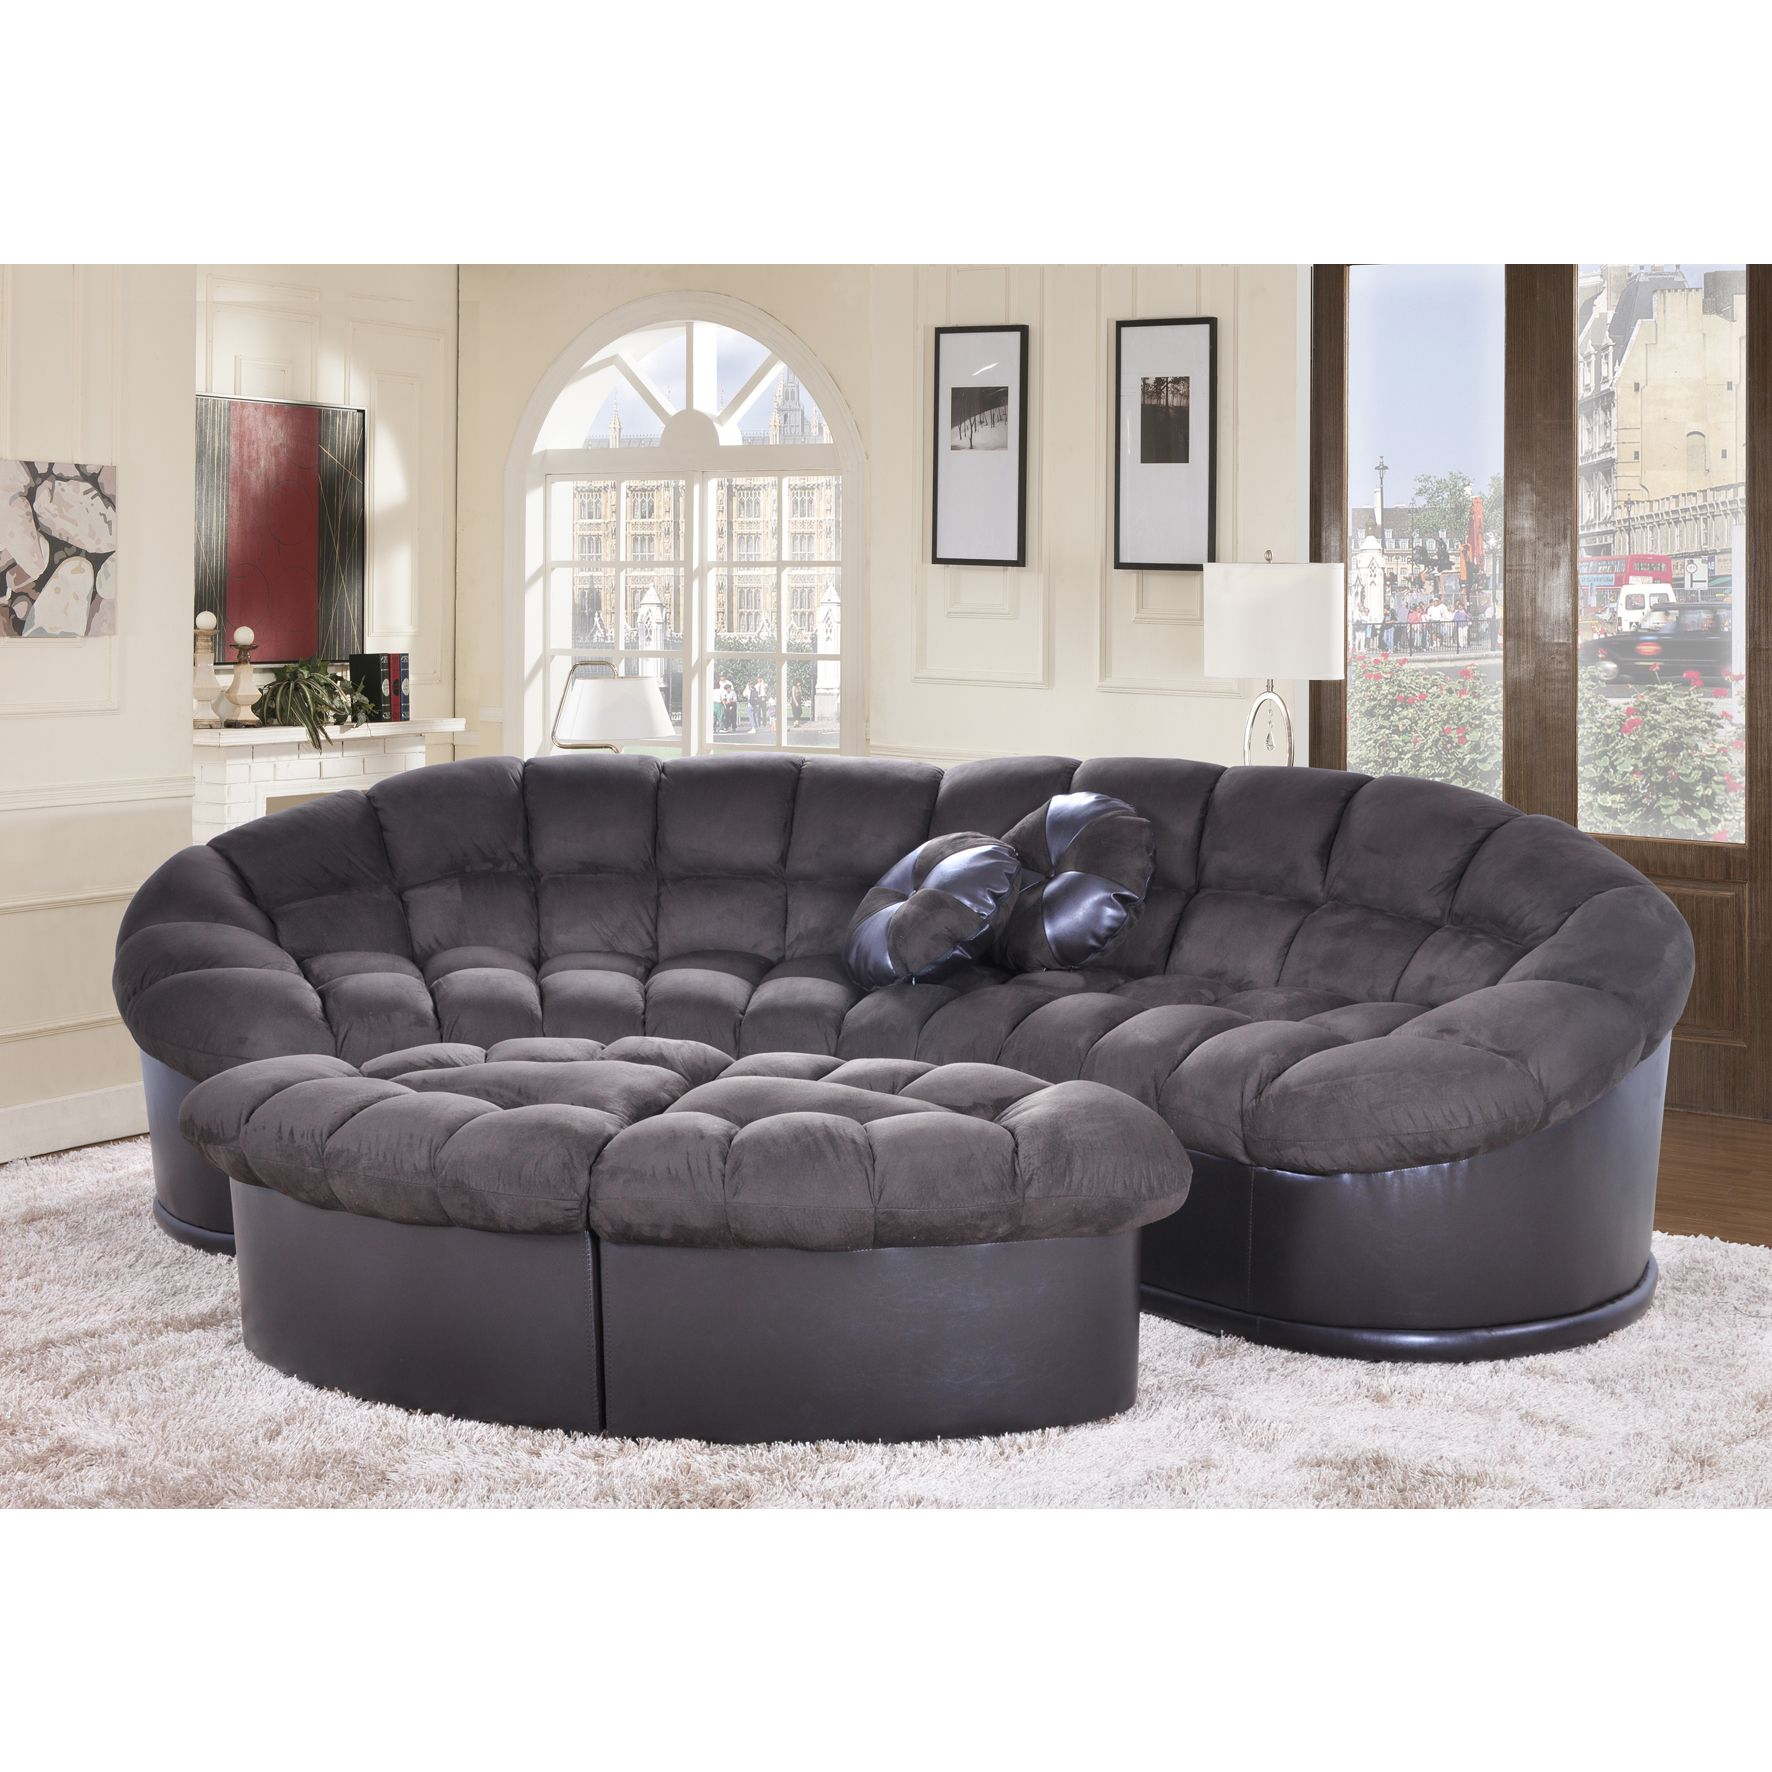 Diana 4 piece Chocolate Papasan Modern Microfiber Sofa and Ottoman